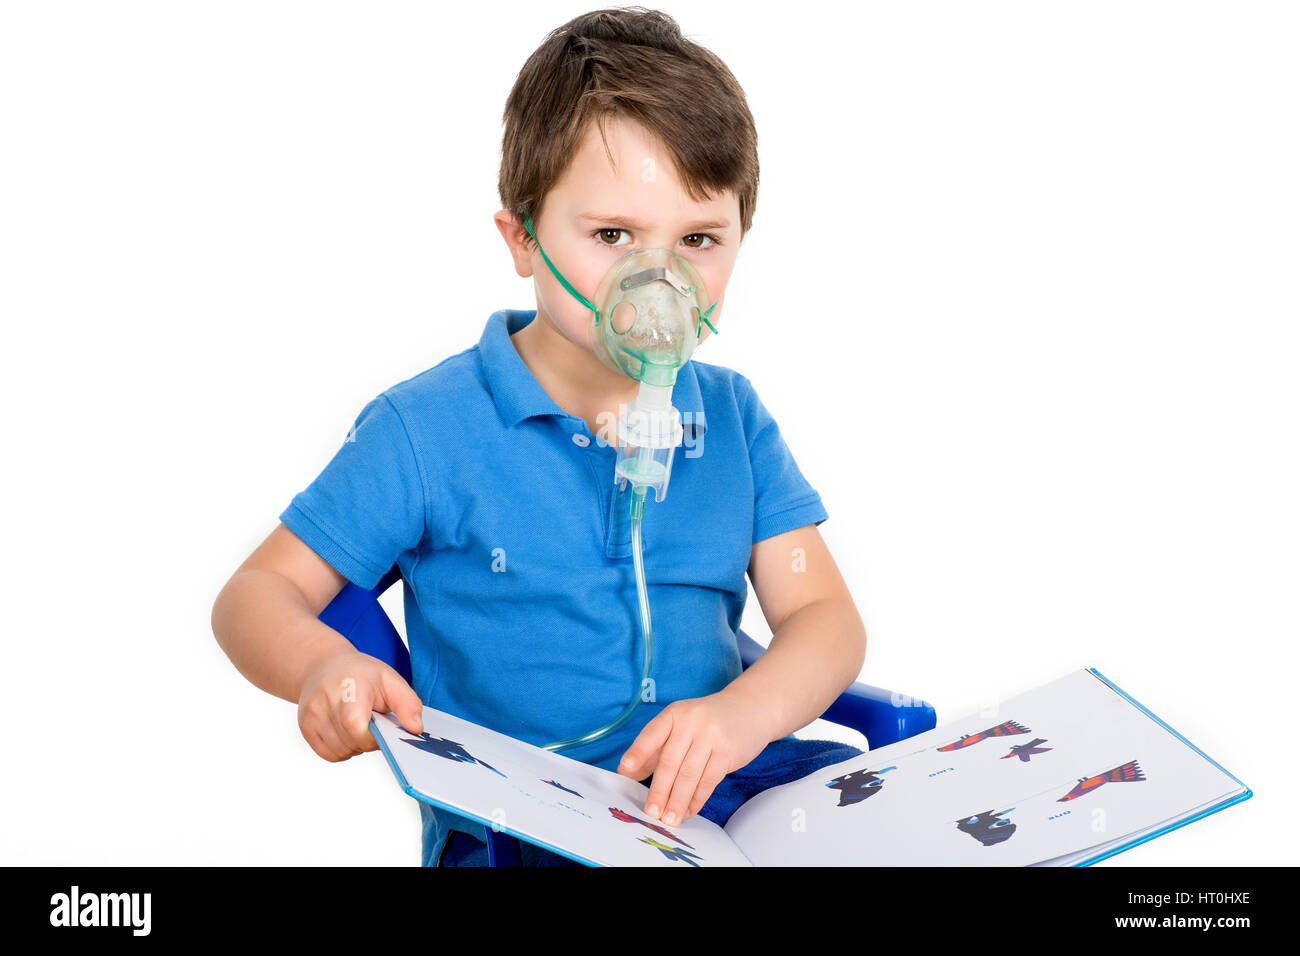 Asthmatic boy wearing face mask from nebulizer inhaler machine. Isolated on a white background. - Stock Image